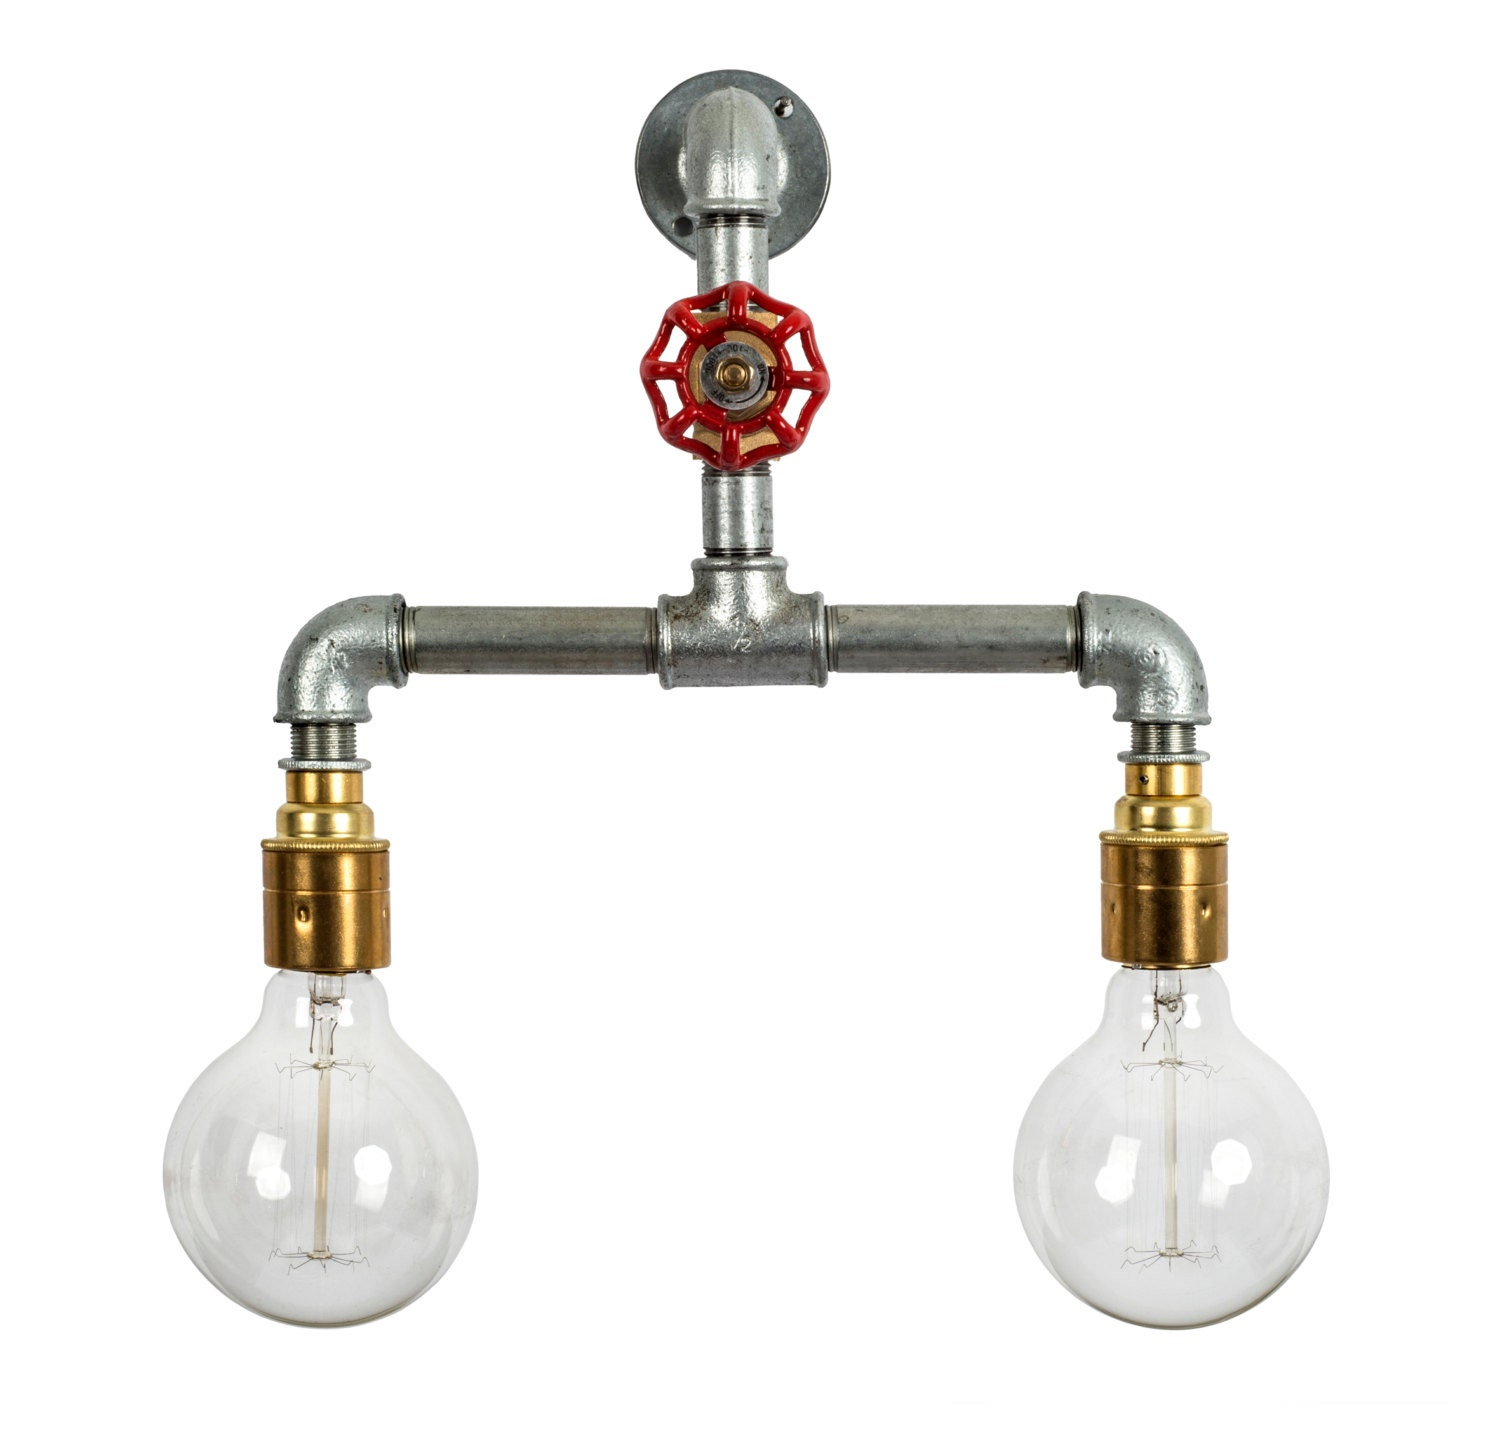 Pipe Lamp Industrial Lamp Urban Pipe Lamp By: Steel Pipe Light Industrial Wall Light E27